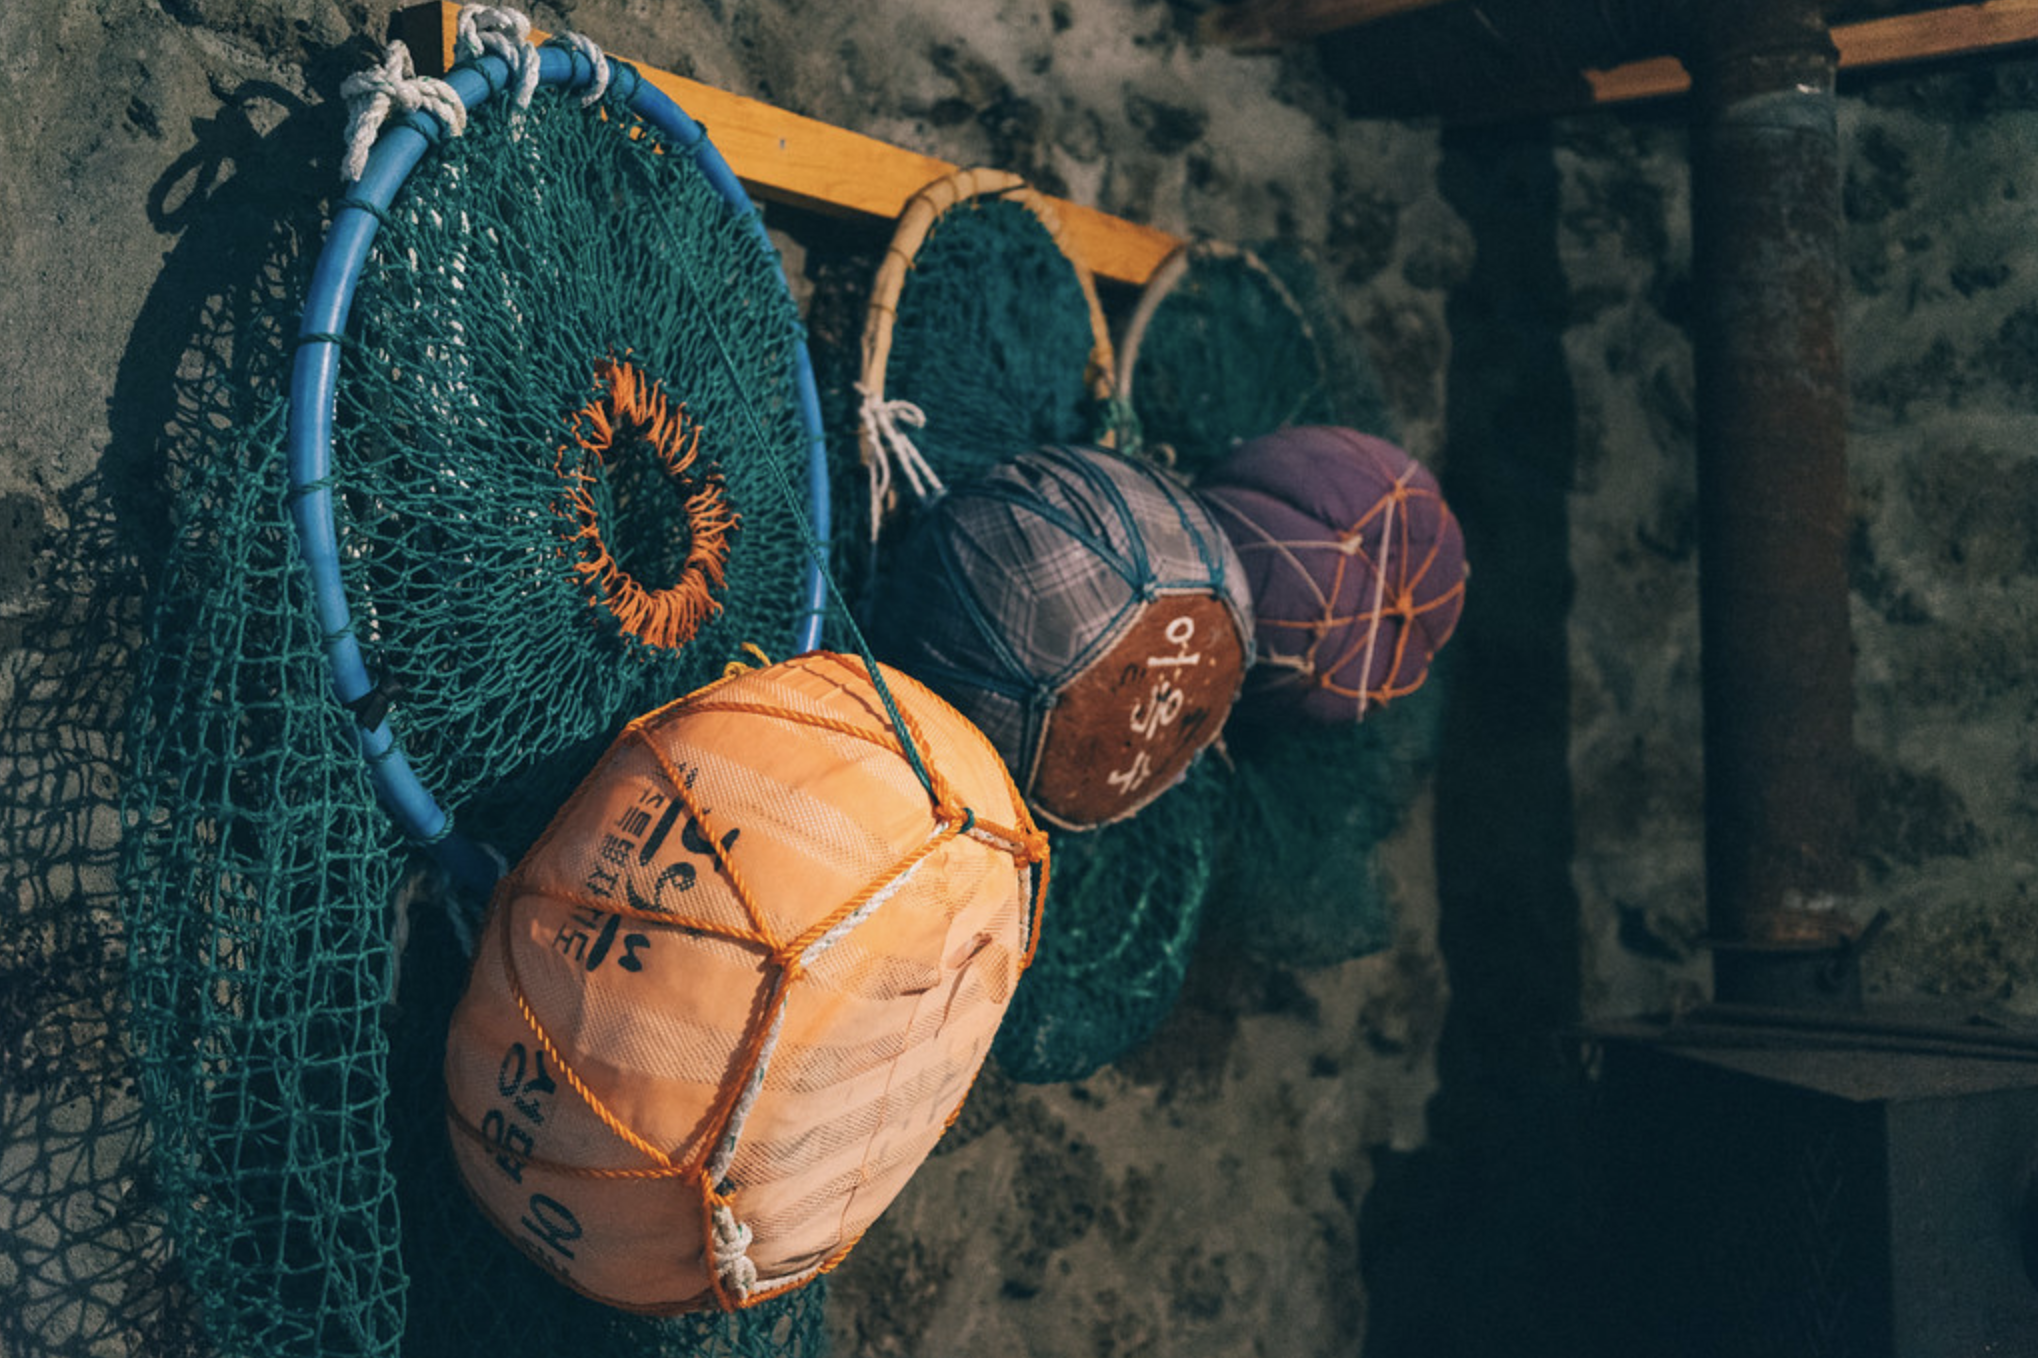 Tools used in Haenyeo diving are hung on a rack.